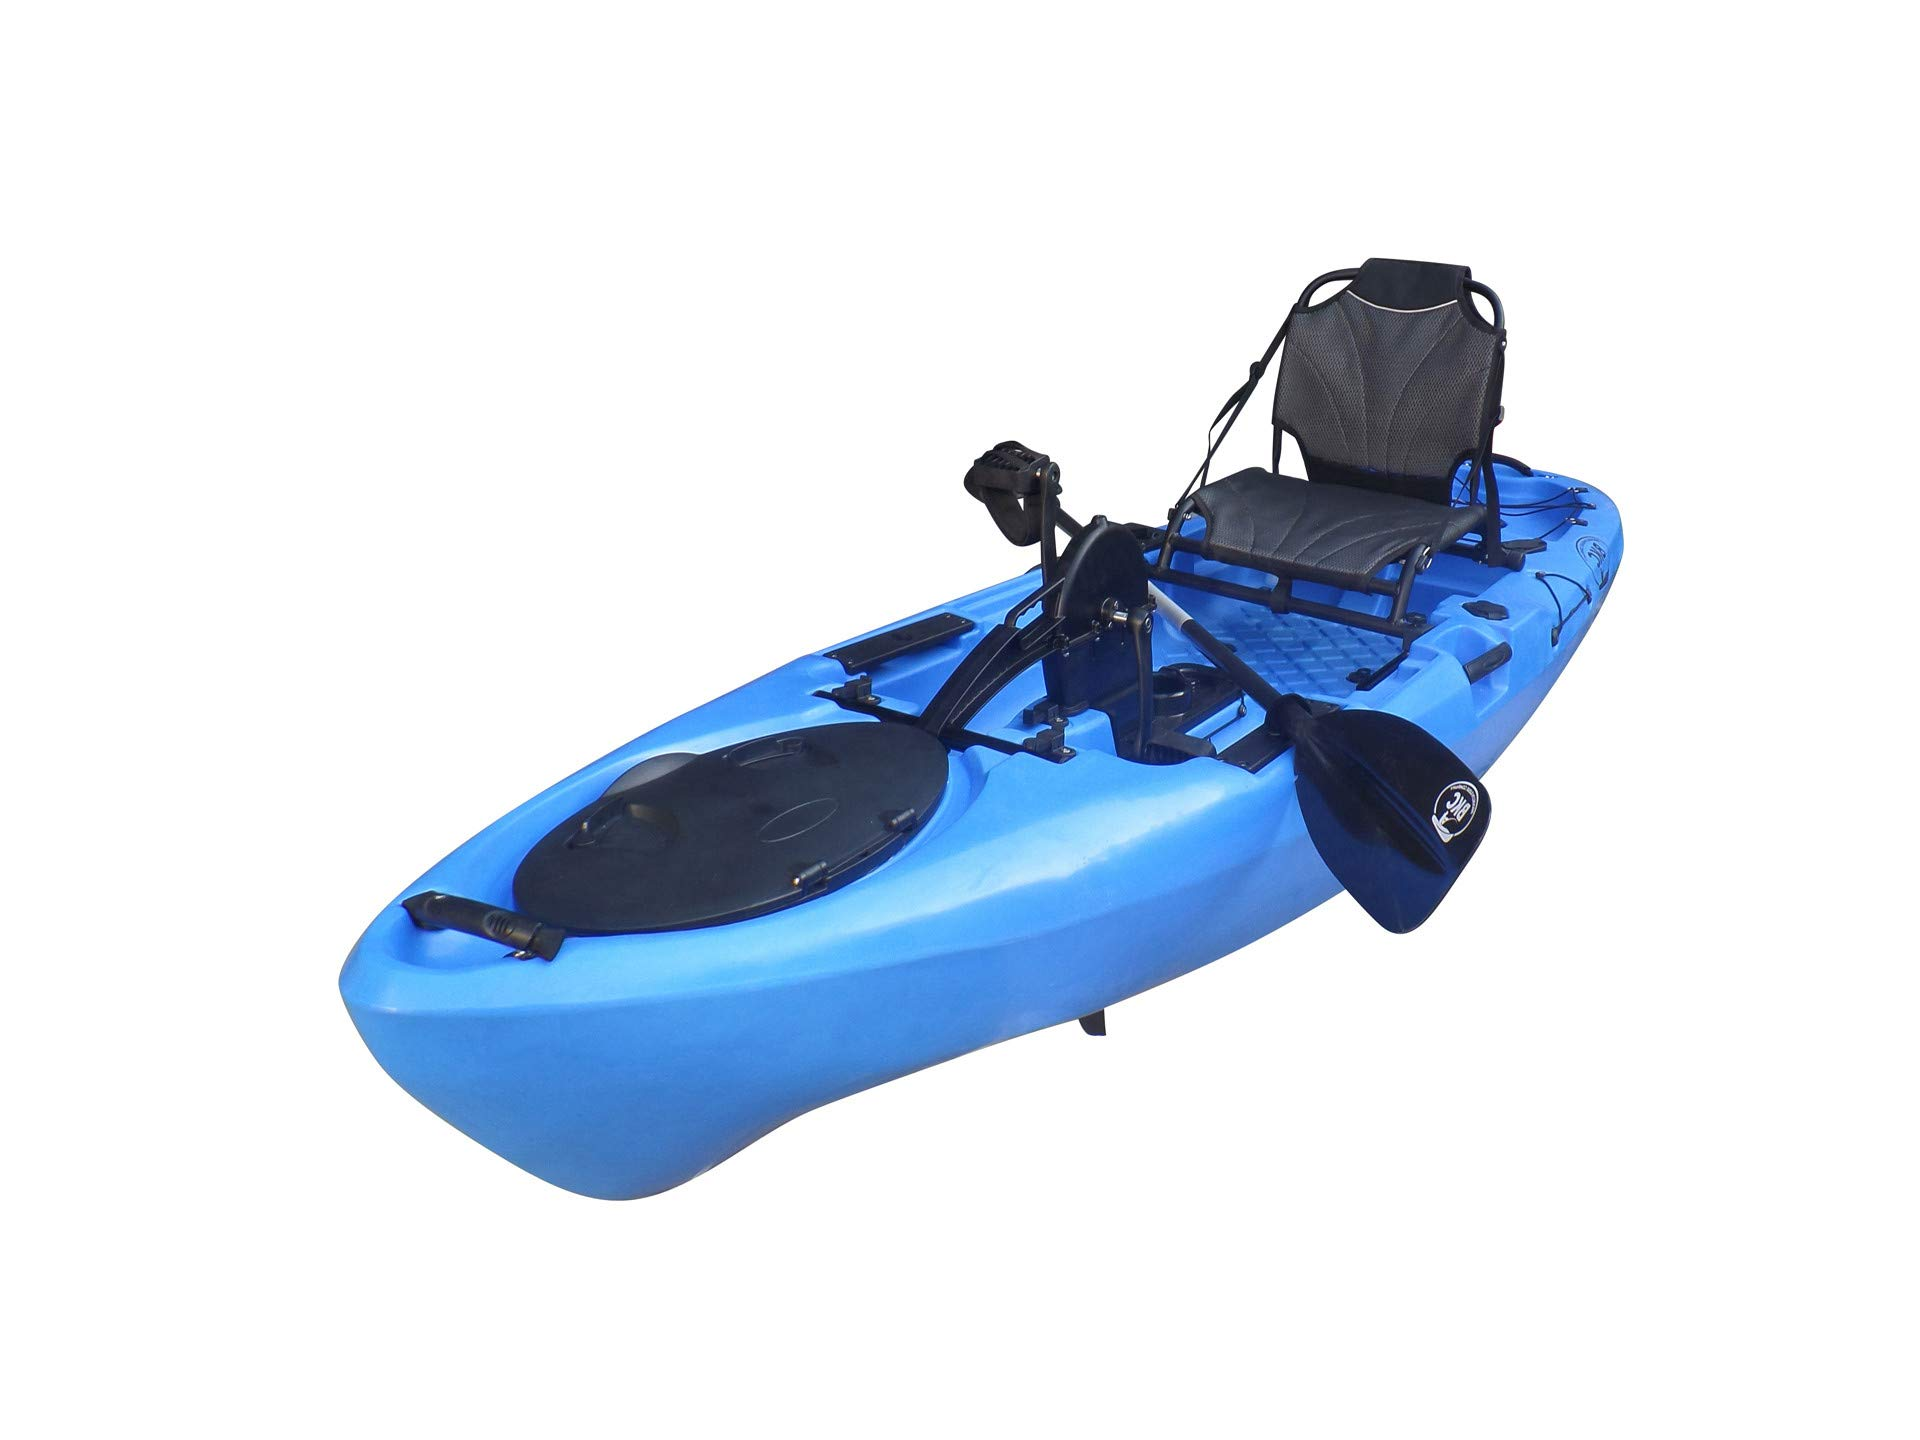 BKC UH-PK11 Pedal Drive Solo Rover 10-Foot 6-Inch Solo Kayak Propeller-Driven Sit On Top Single Fishing Kayak with Pedal Drive, Rudder System, Paddle, and Seat Included (Blue) by Brooklyn Kayak Company